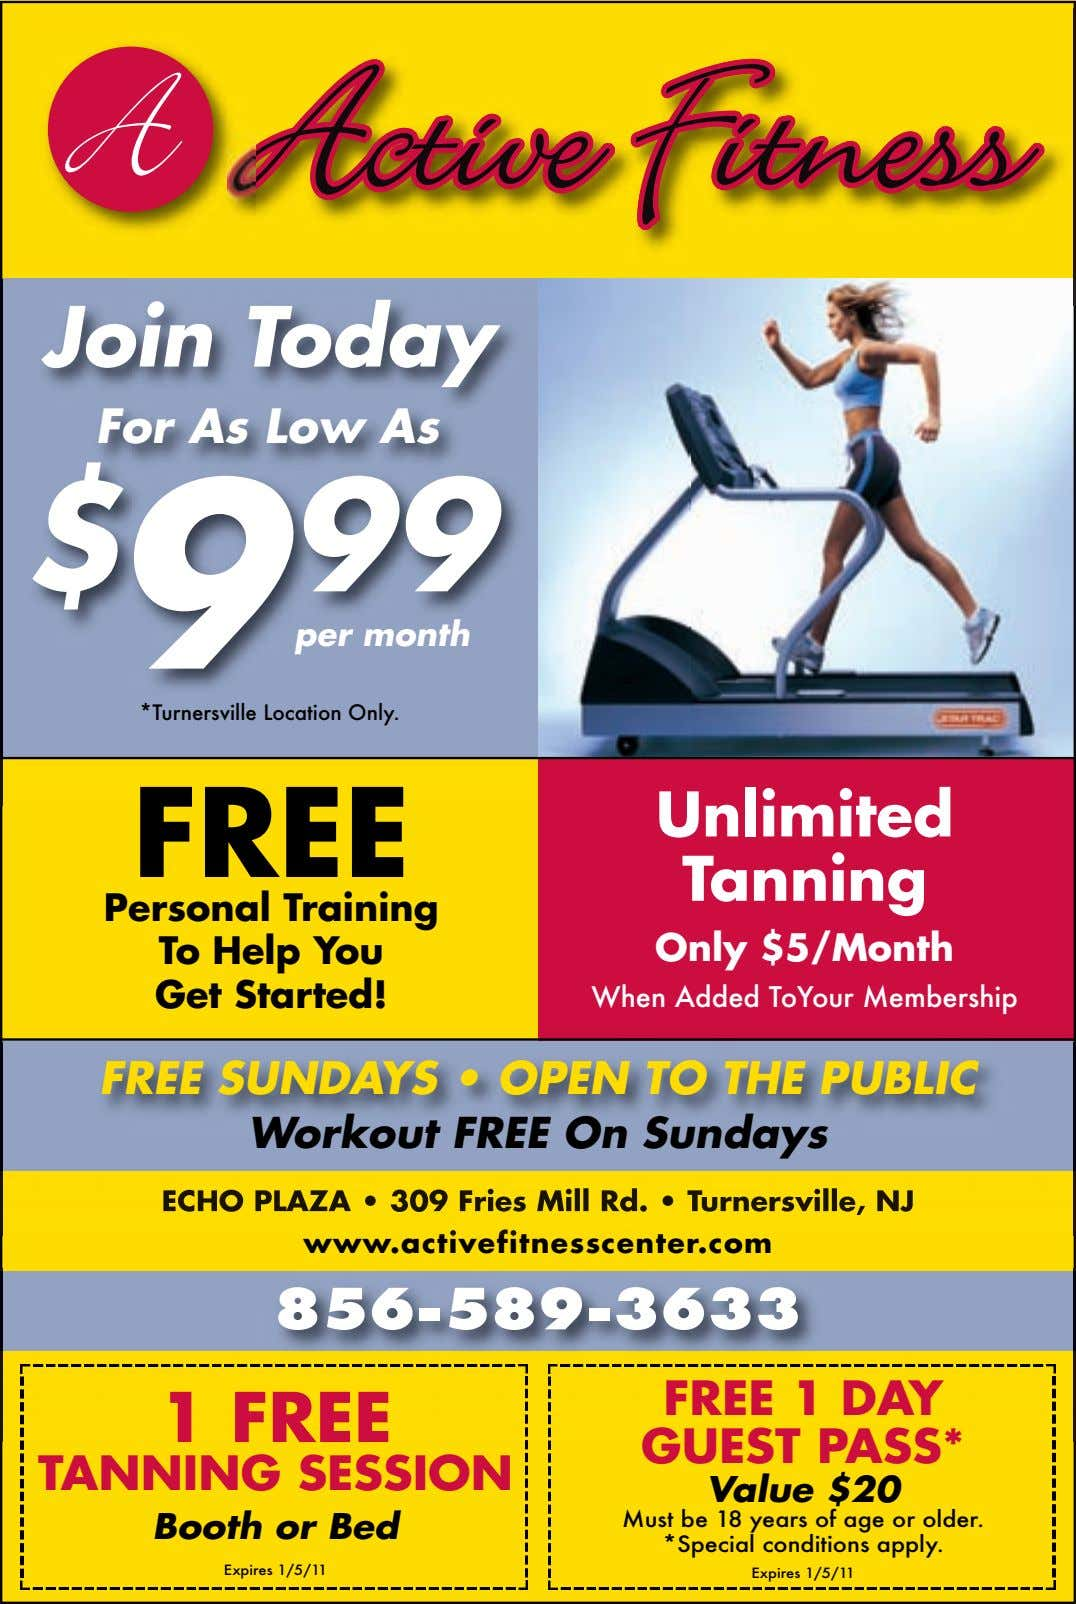 Join Today For As Low As $ 9 99 per month *Turnersville Location Only. FREE Unlimited